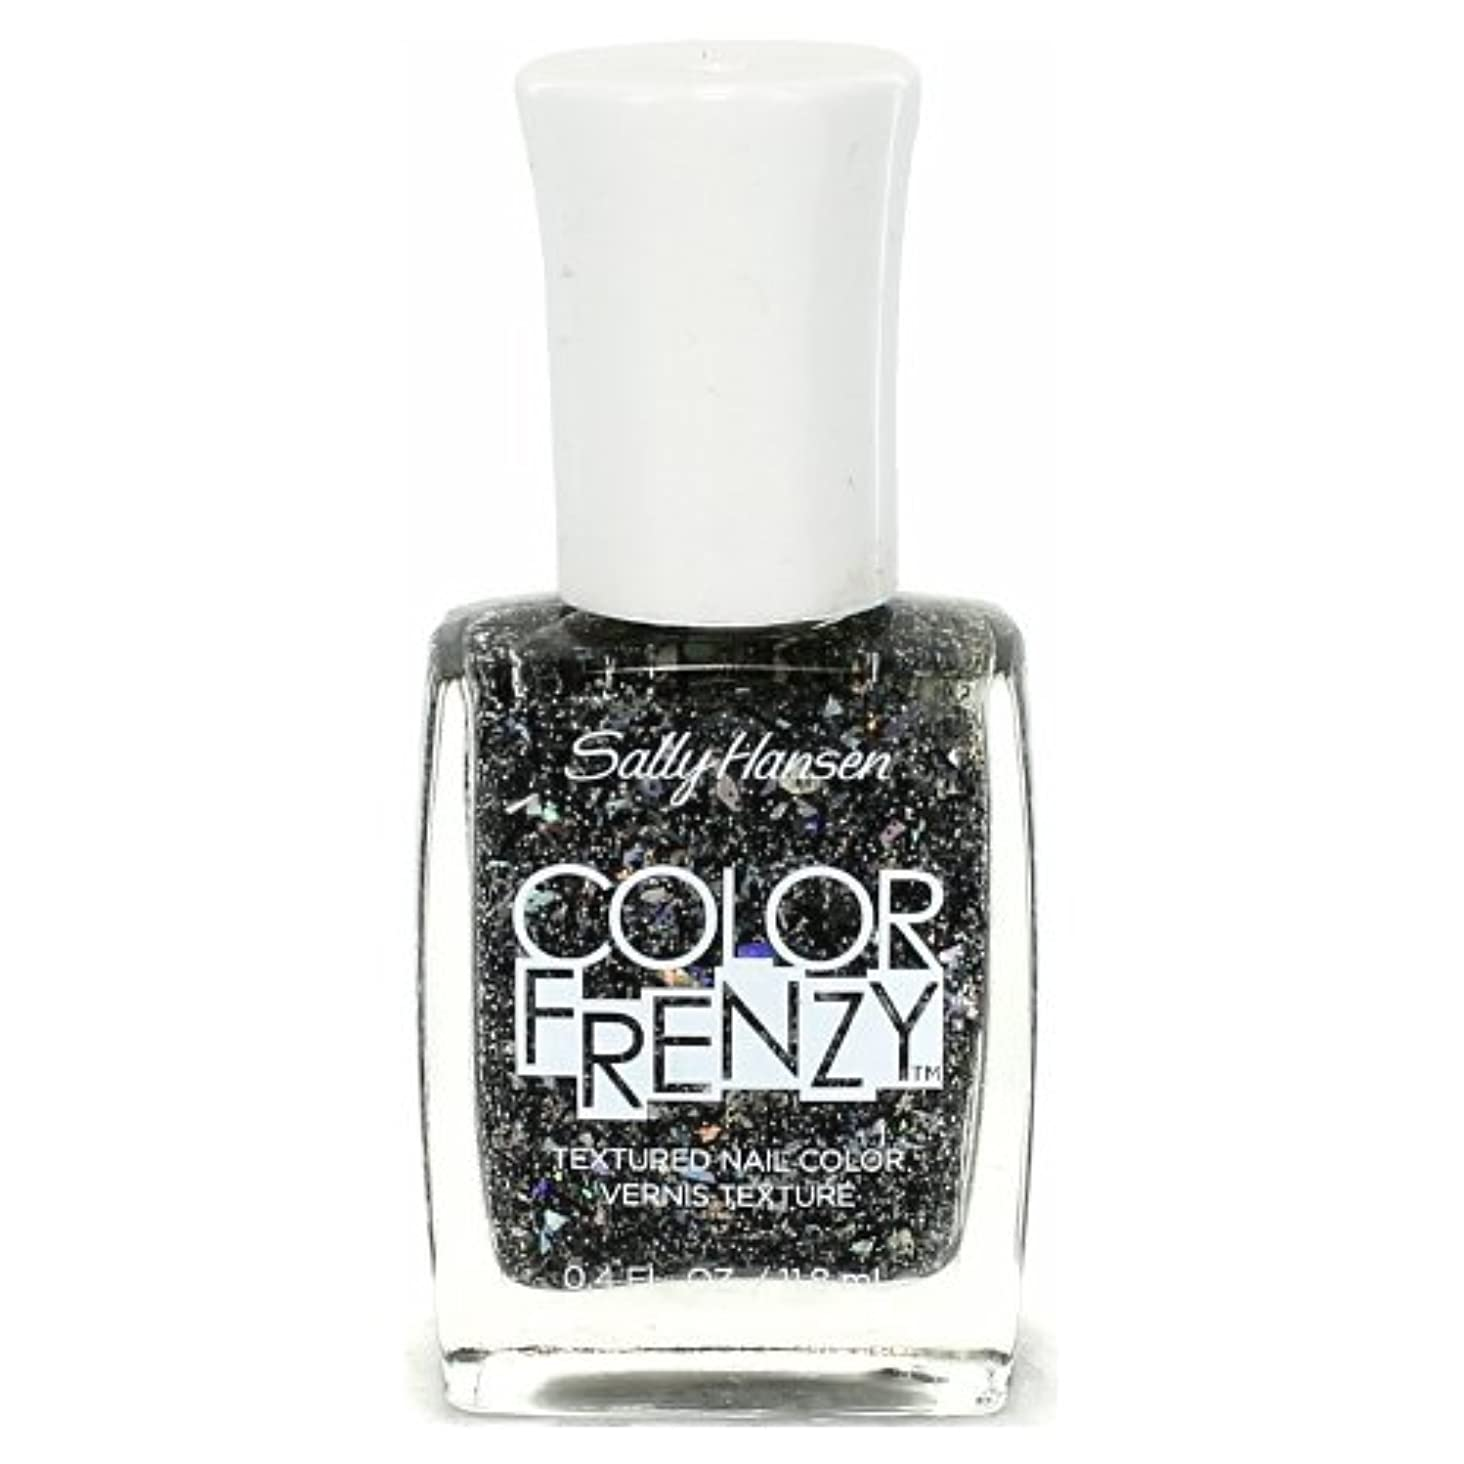 用心レイアウト連鎖(6 Pack) SALLY HANSEN Color Frenzy Textured Nail Color - Spark & Pepper (並行輸入品)